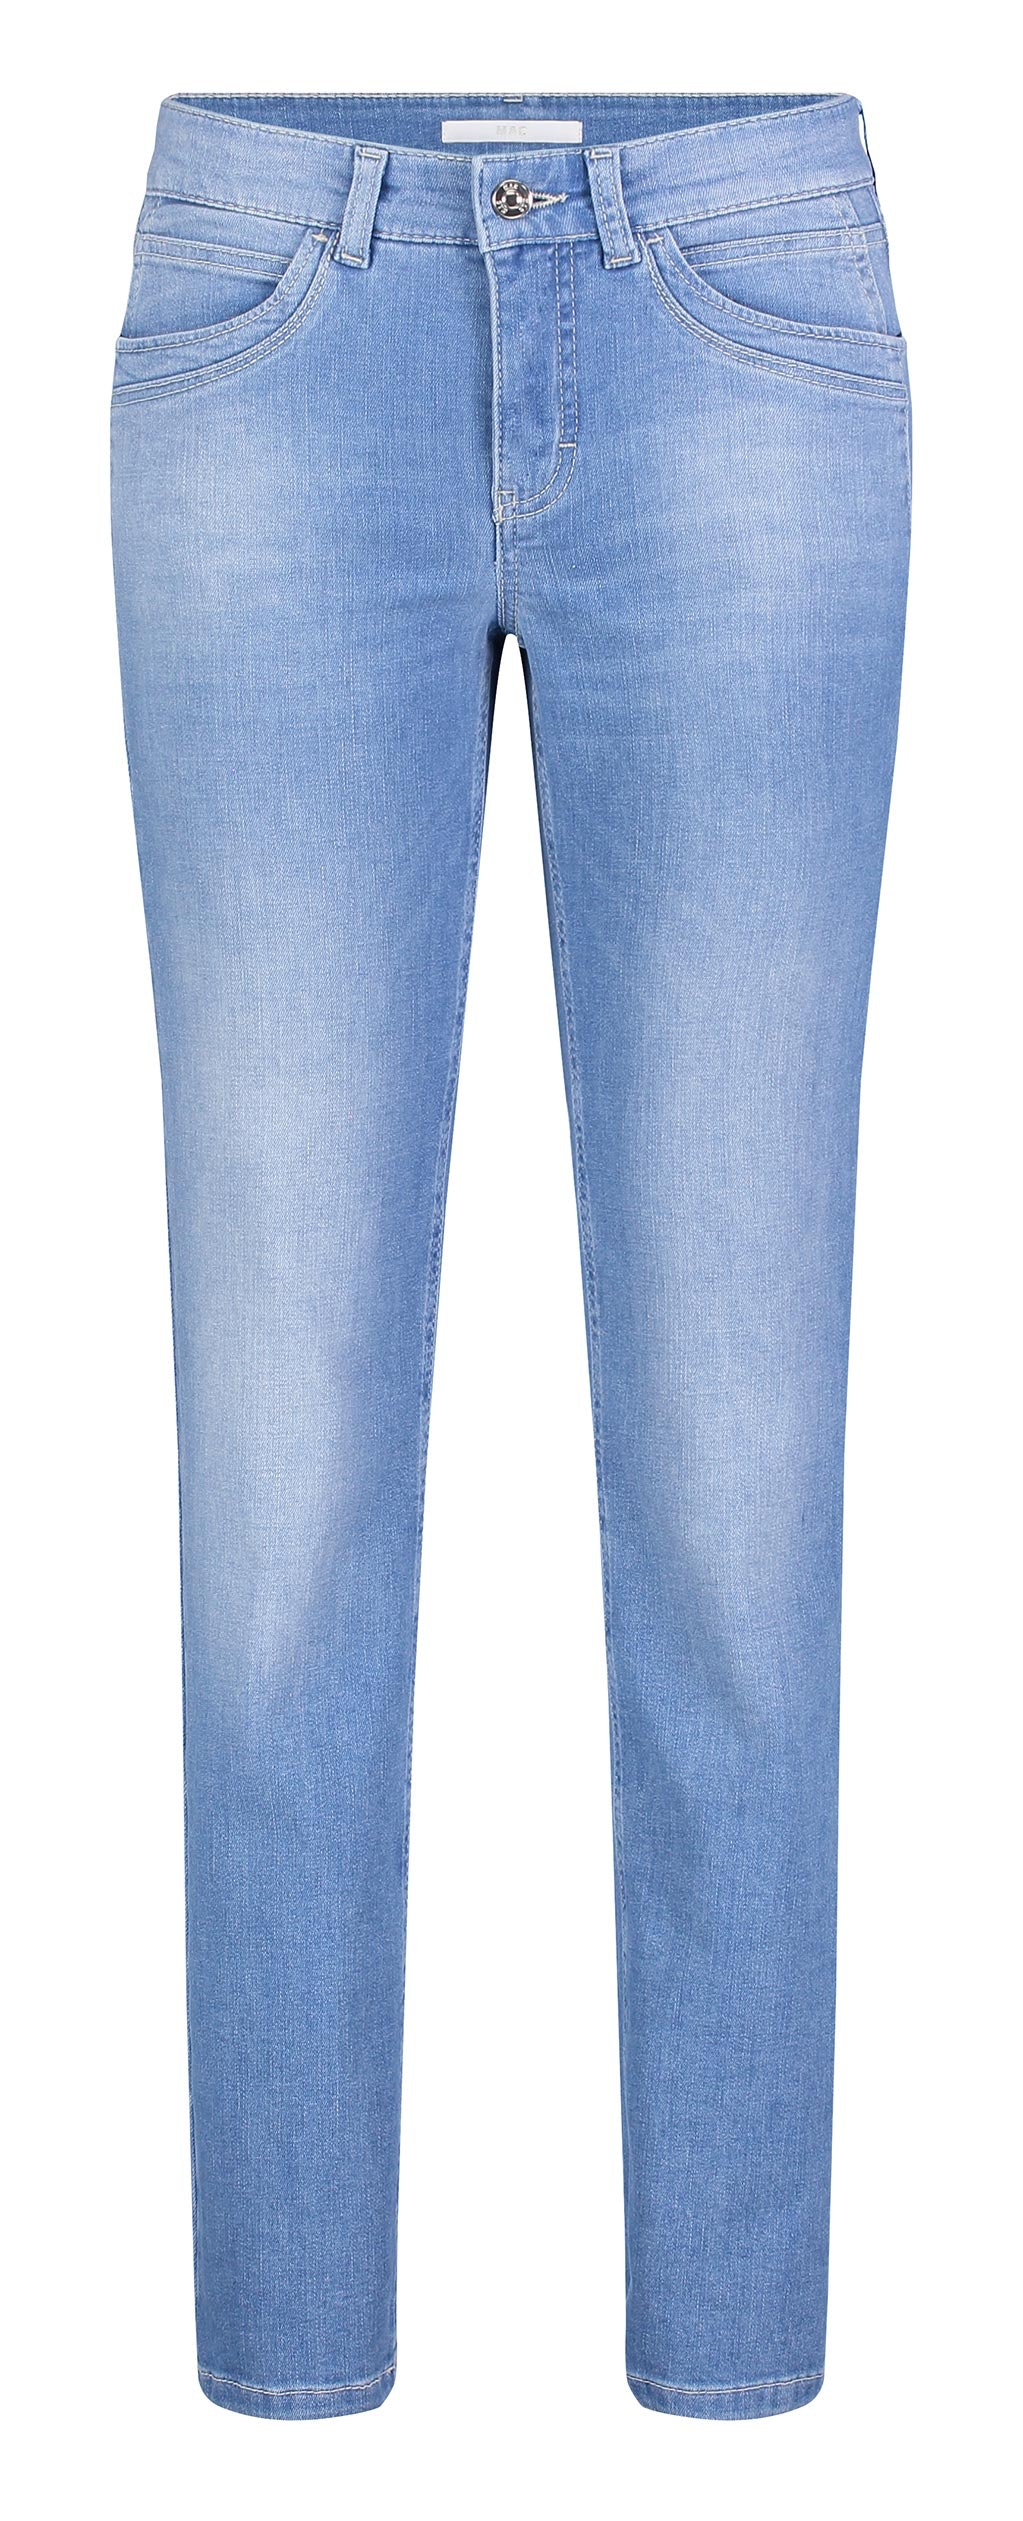 MAC JEANS - ANGELA new, Light authentic denim